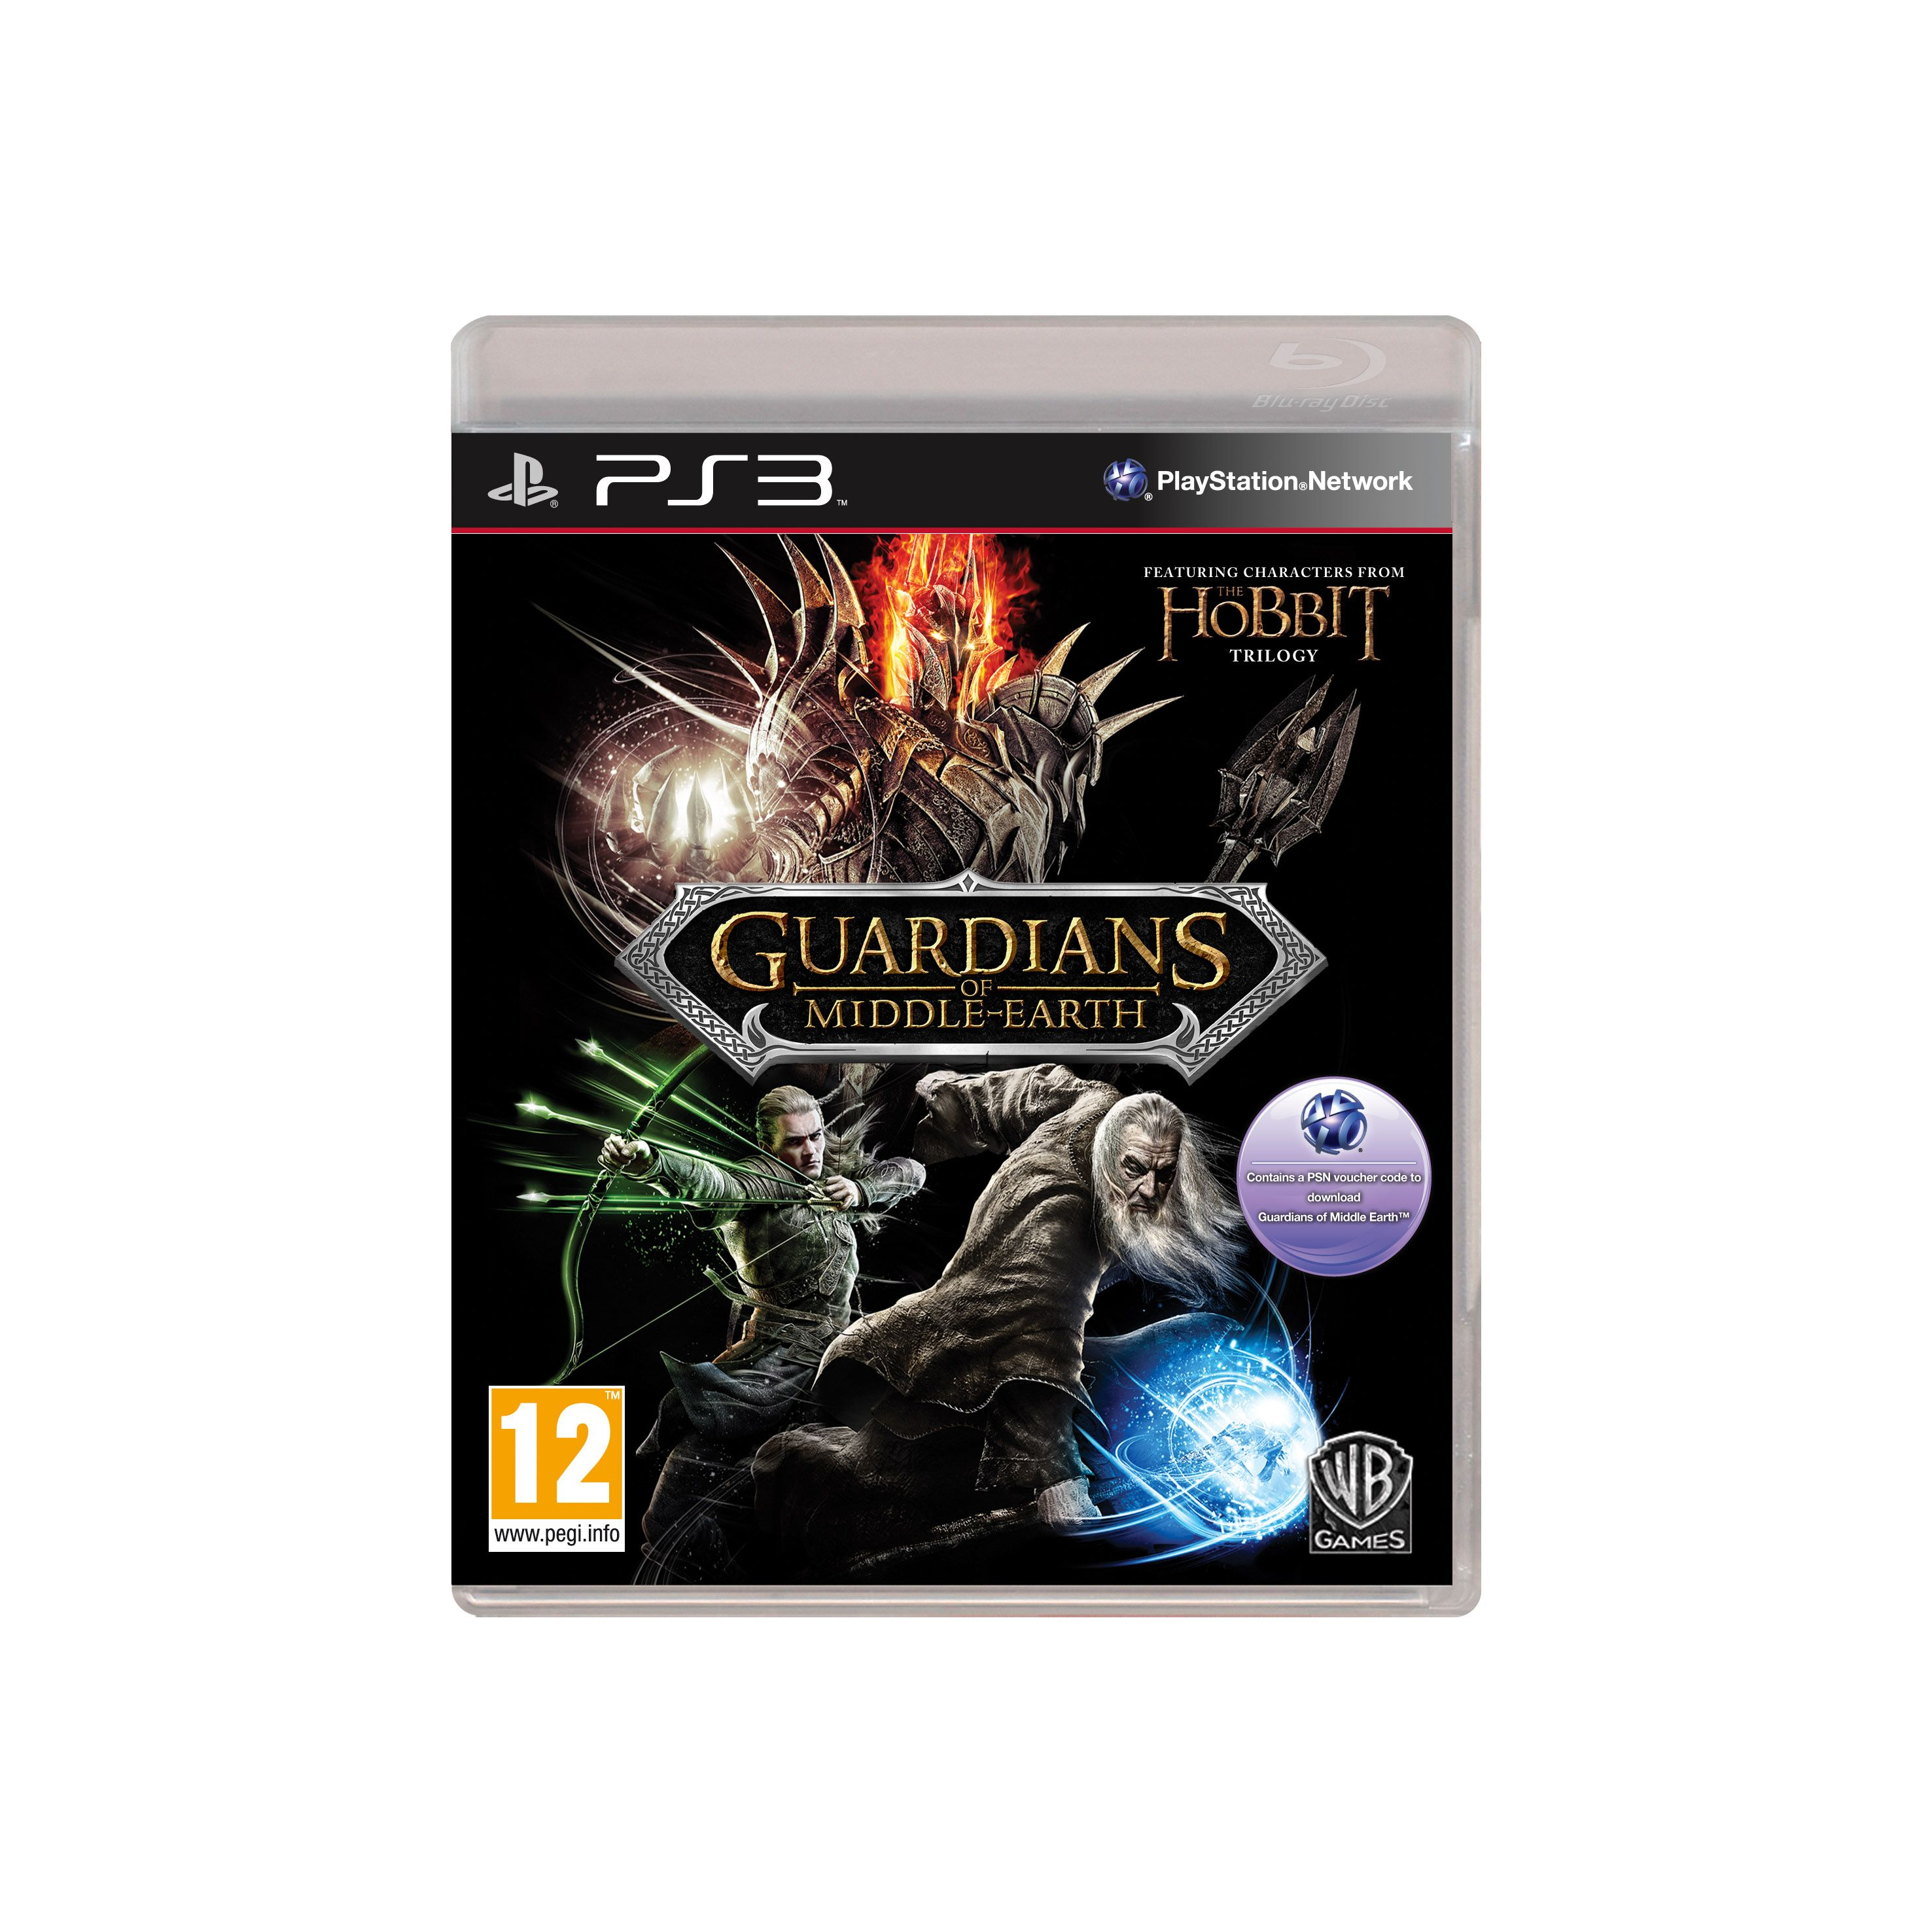 Guardians of Middle-Earth dated, priced